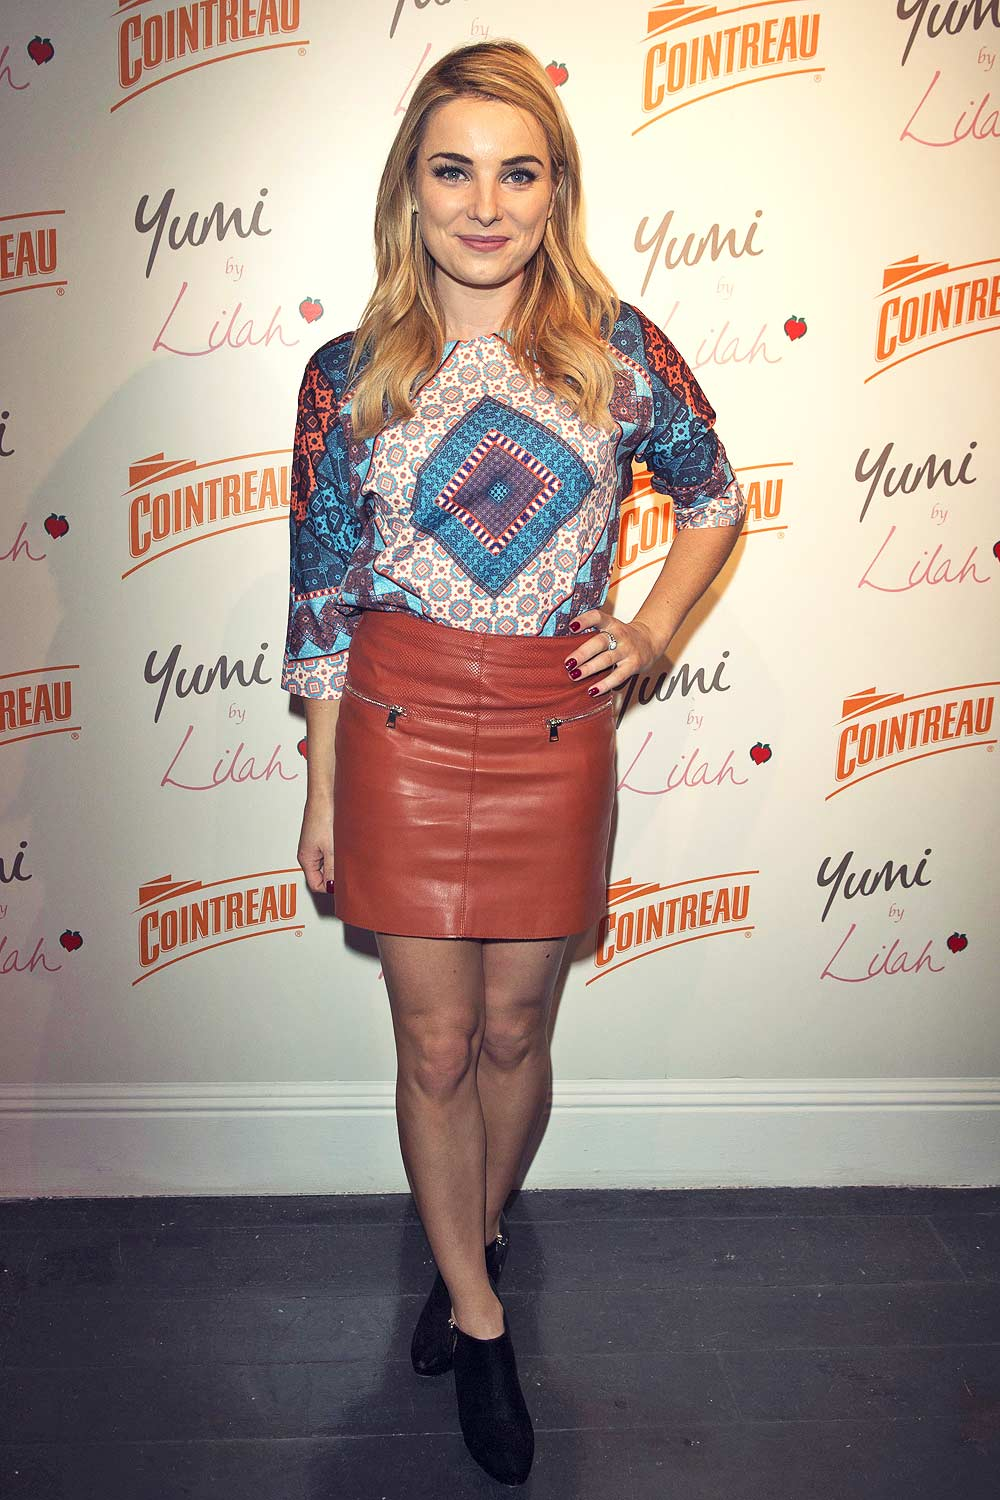 Sian Welby attends the Cointreau launch party for Yumi By Lilah SS 2016 collection